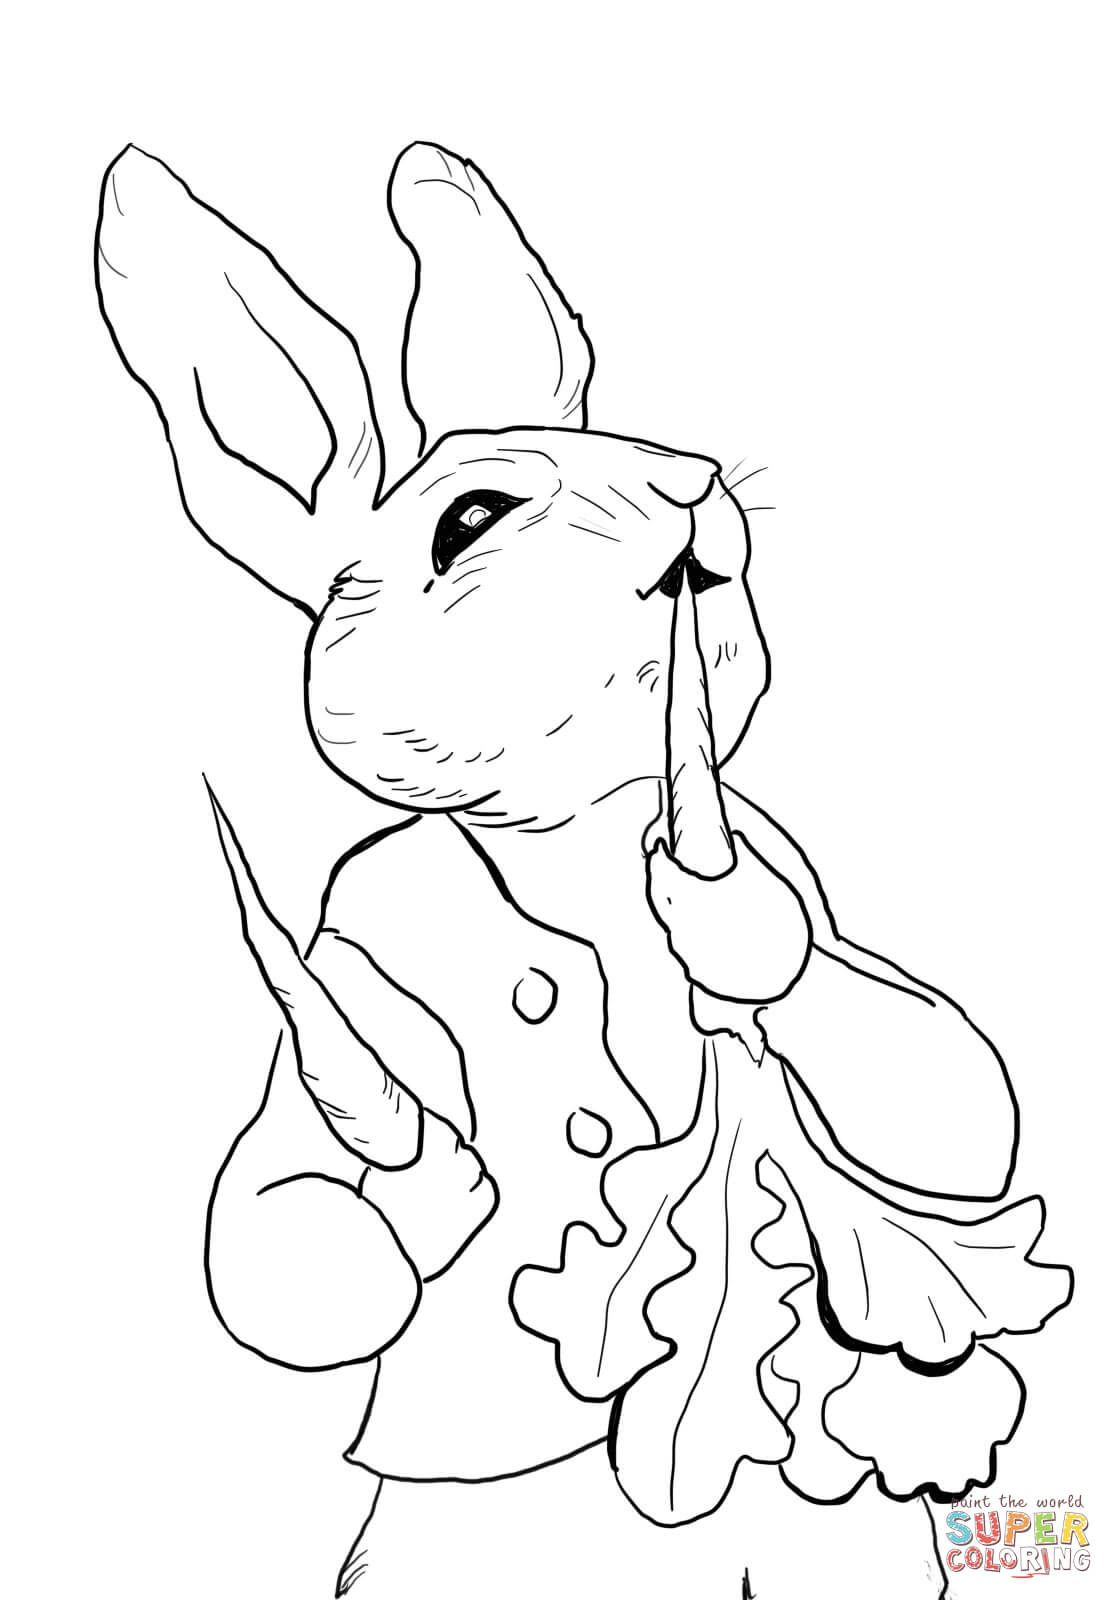 Peter Rabbit Eating Radishes coloring page from Peter